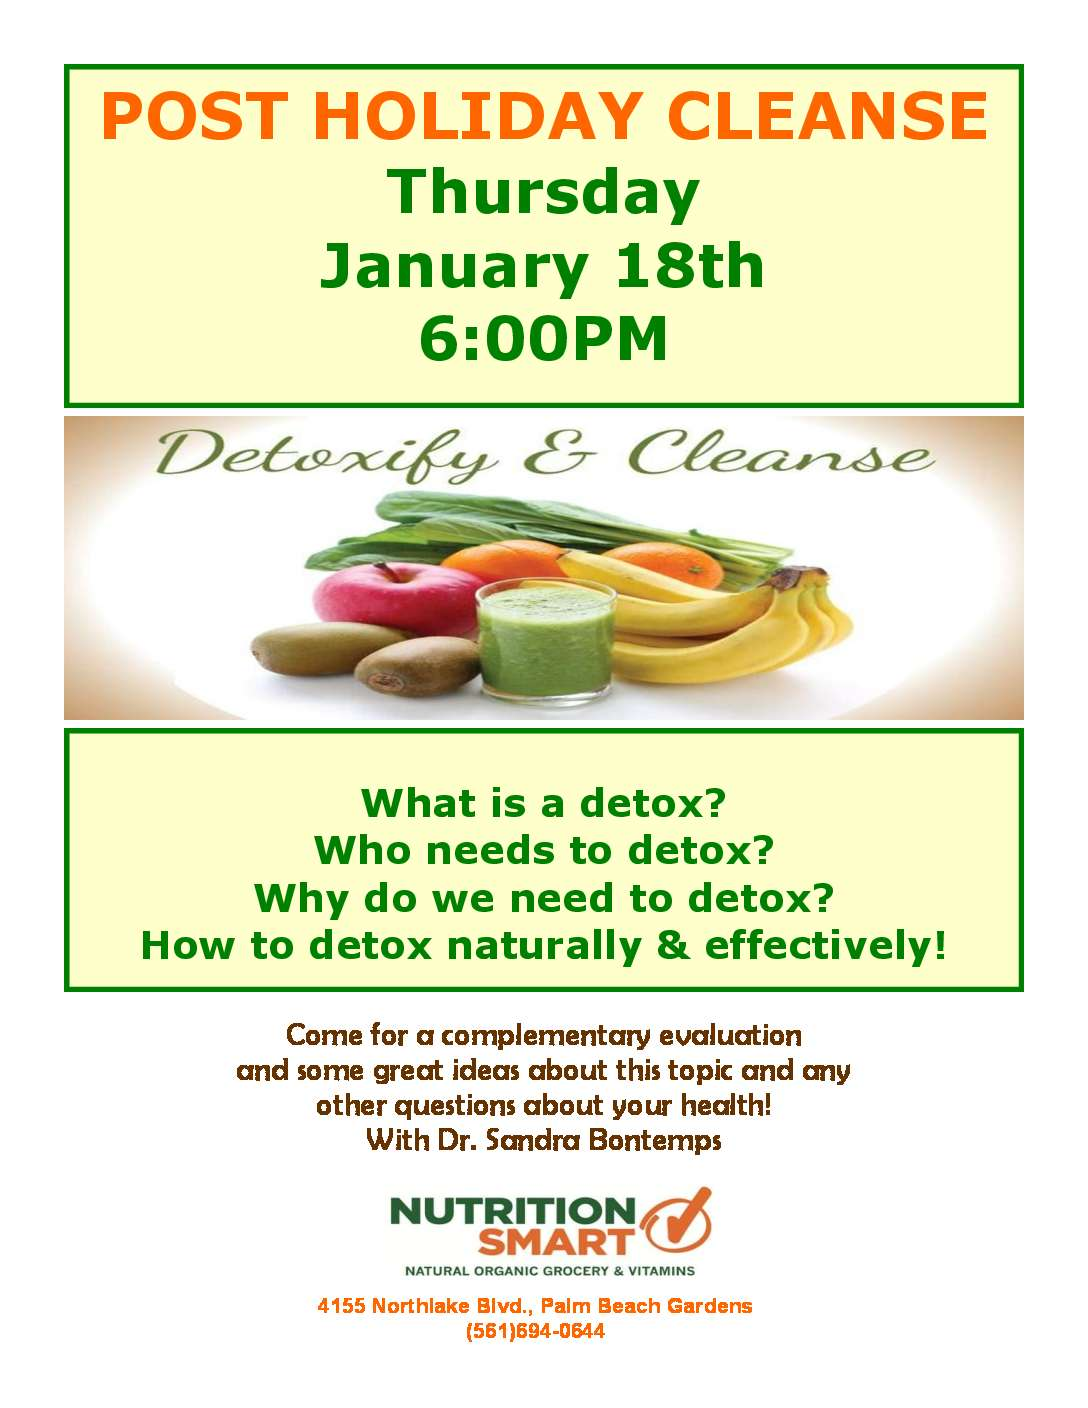 Post Holiday Cleanse with Dr. Sandra Bontemps - Nutritionsmart